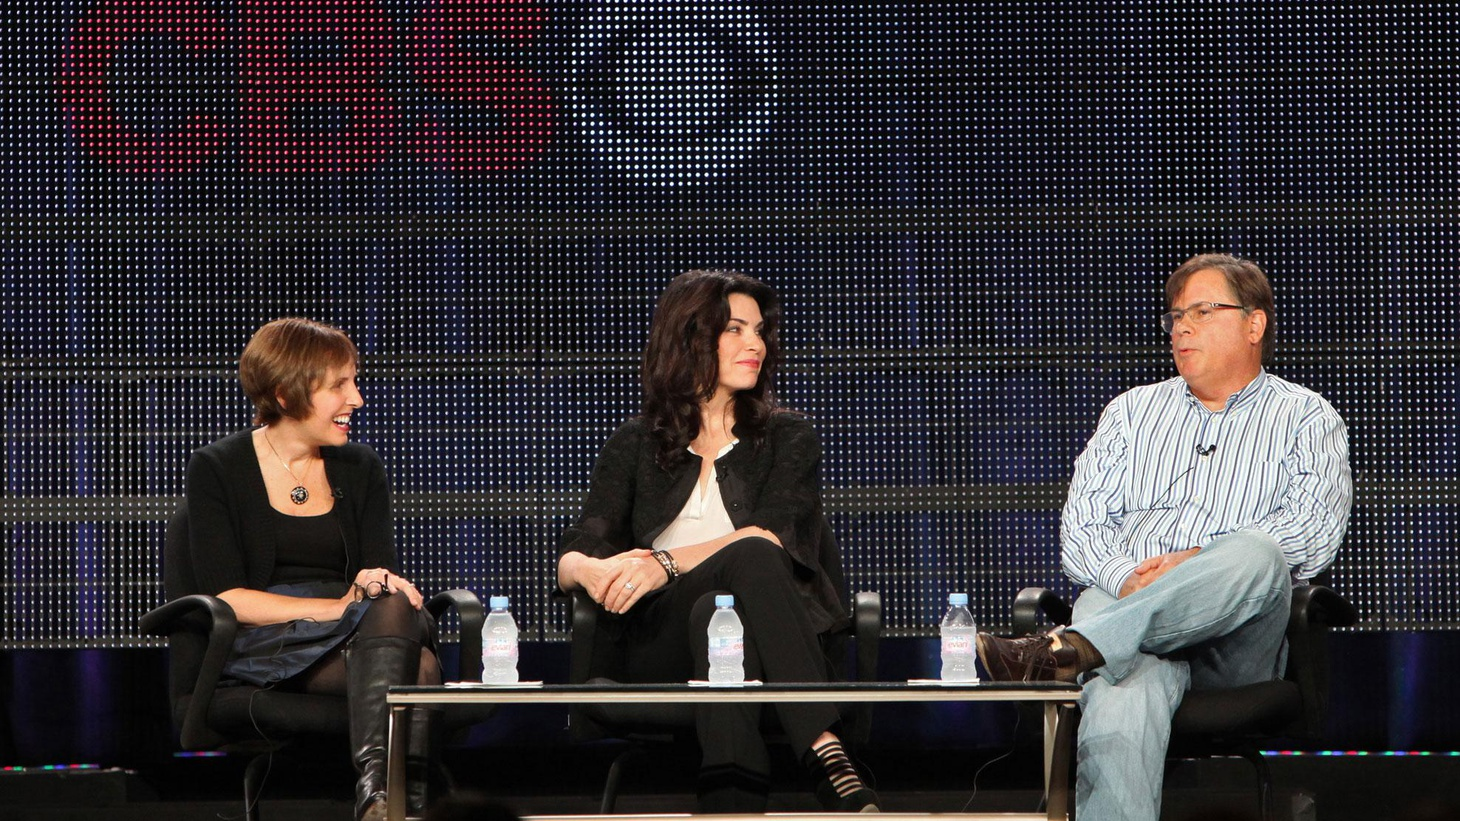 Robert and Michelle King say that having The Good Wife, presented to advertisers at the upfronts is like being at an insurance salesmen convention, but with great jokes...